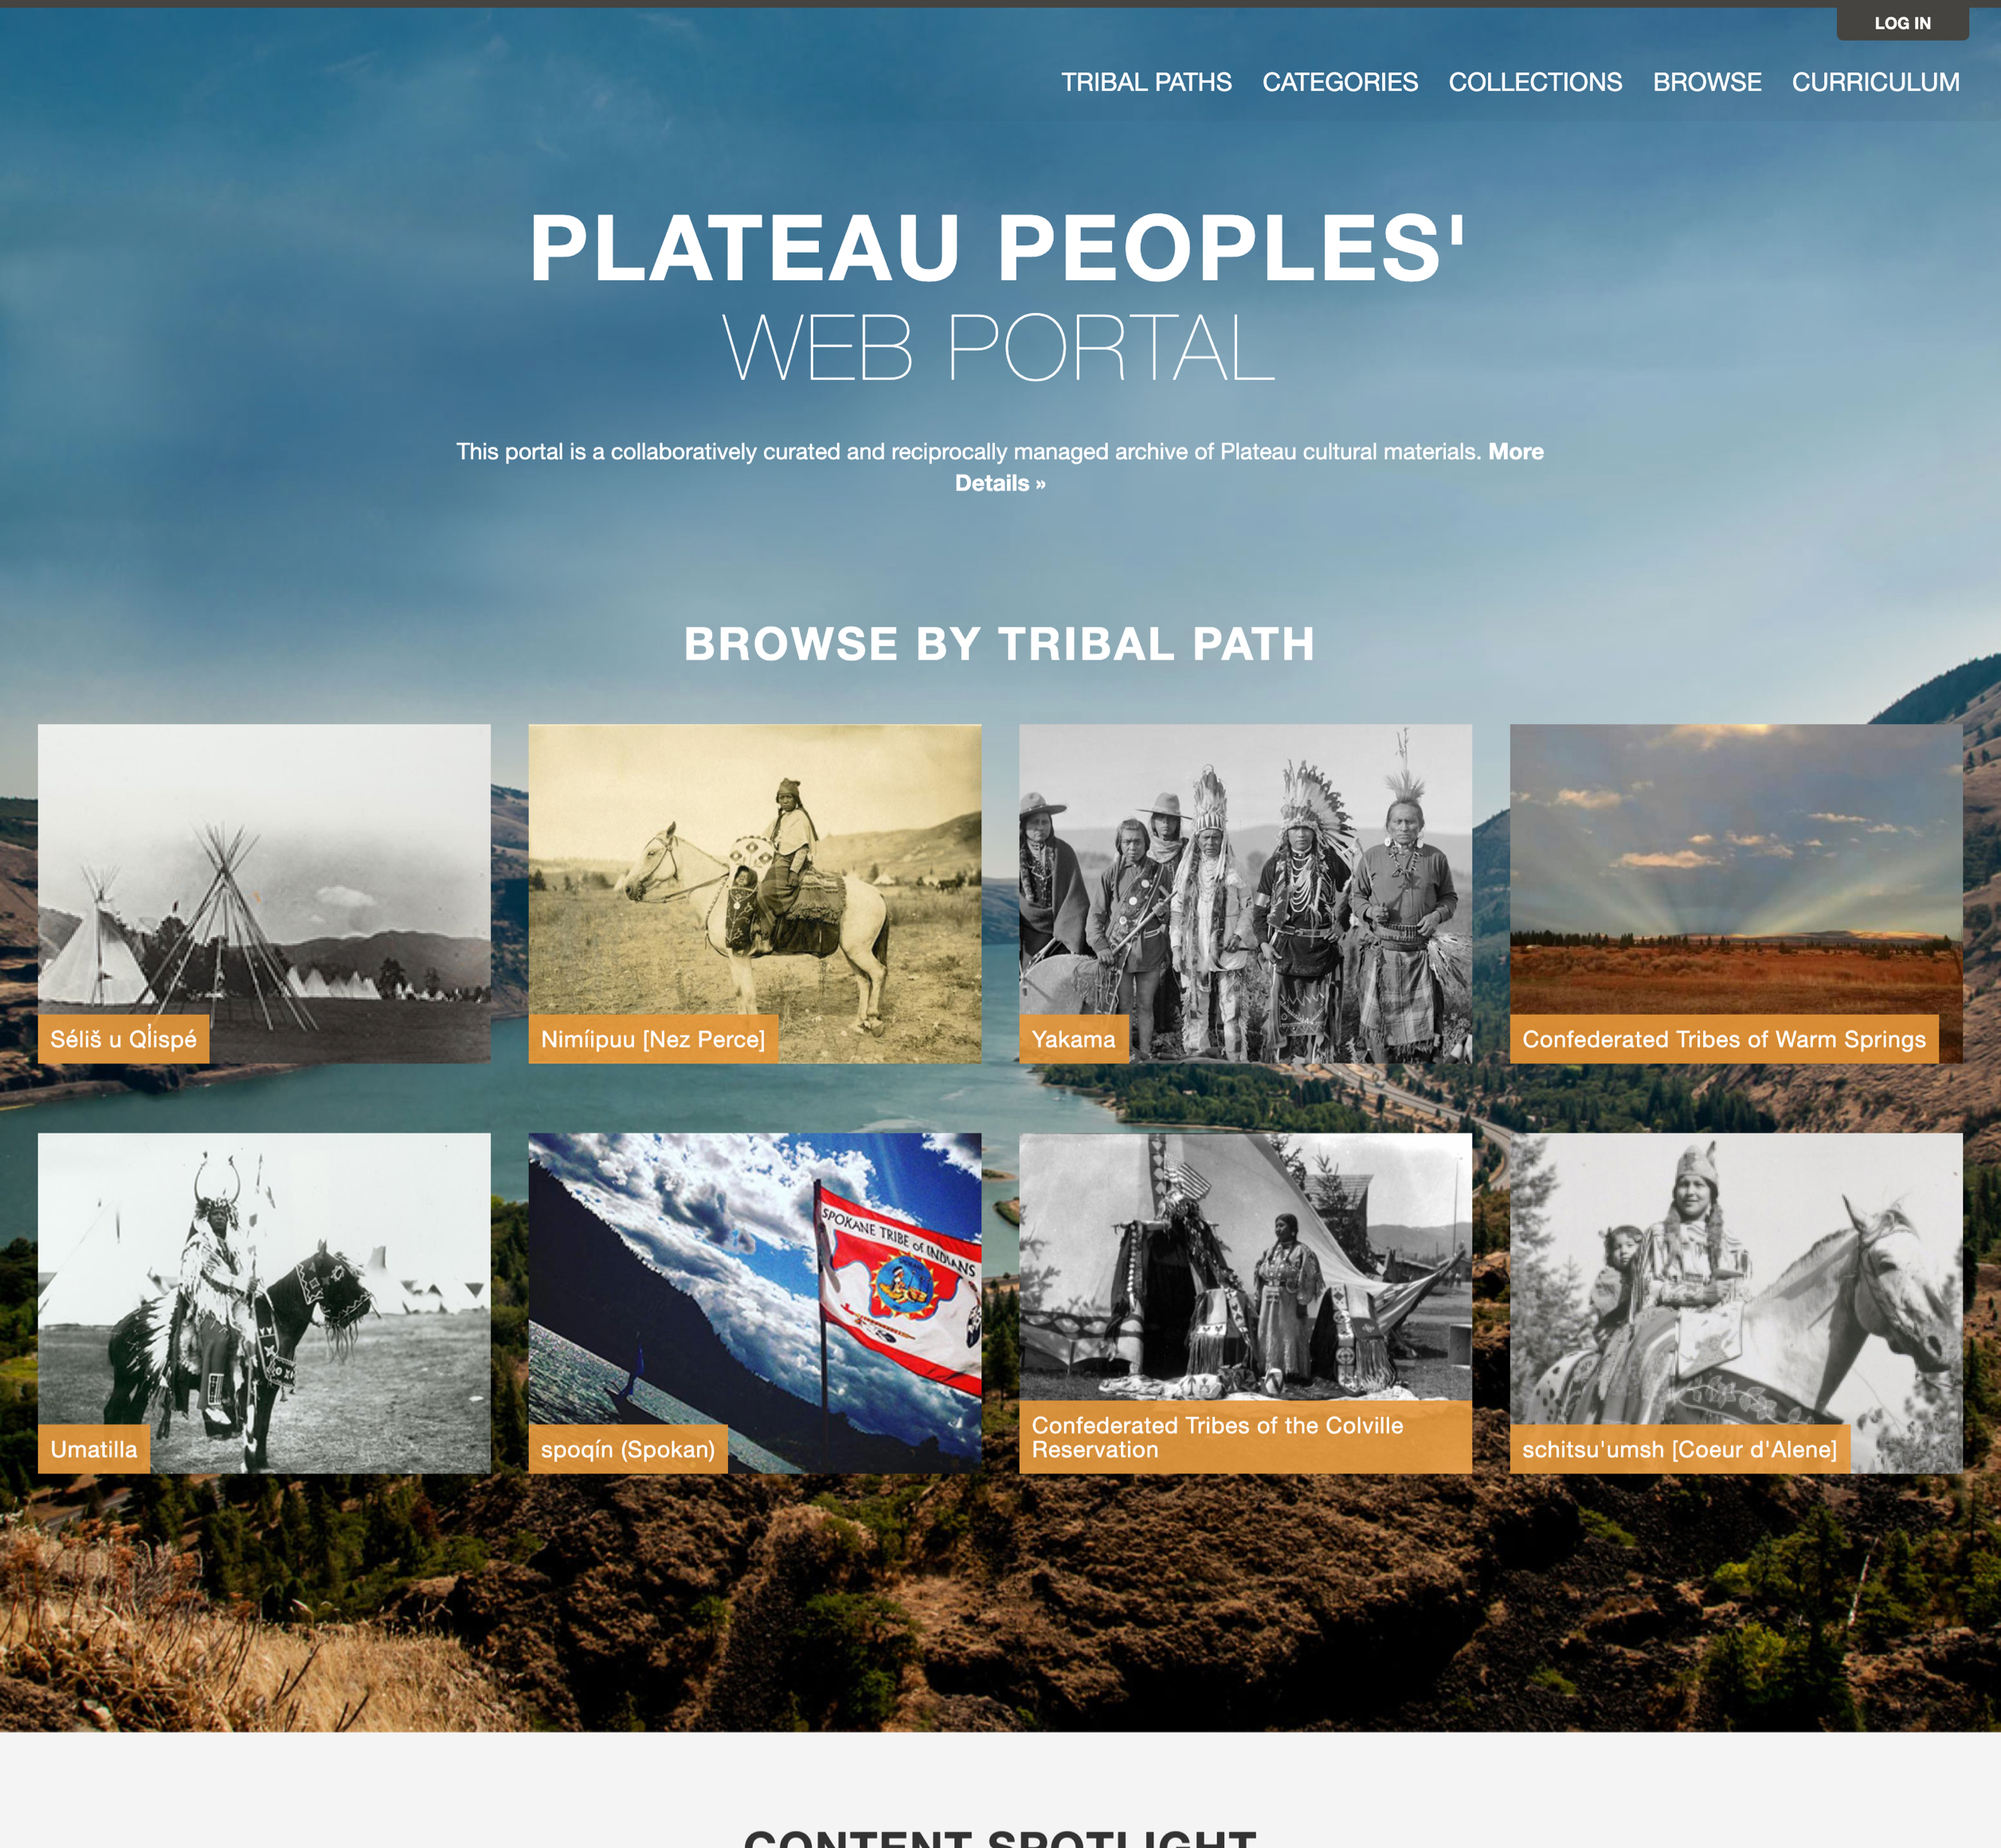 A screenshot of Washington State University's Mukutu website for the Plateau Peoples'.